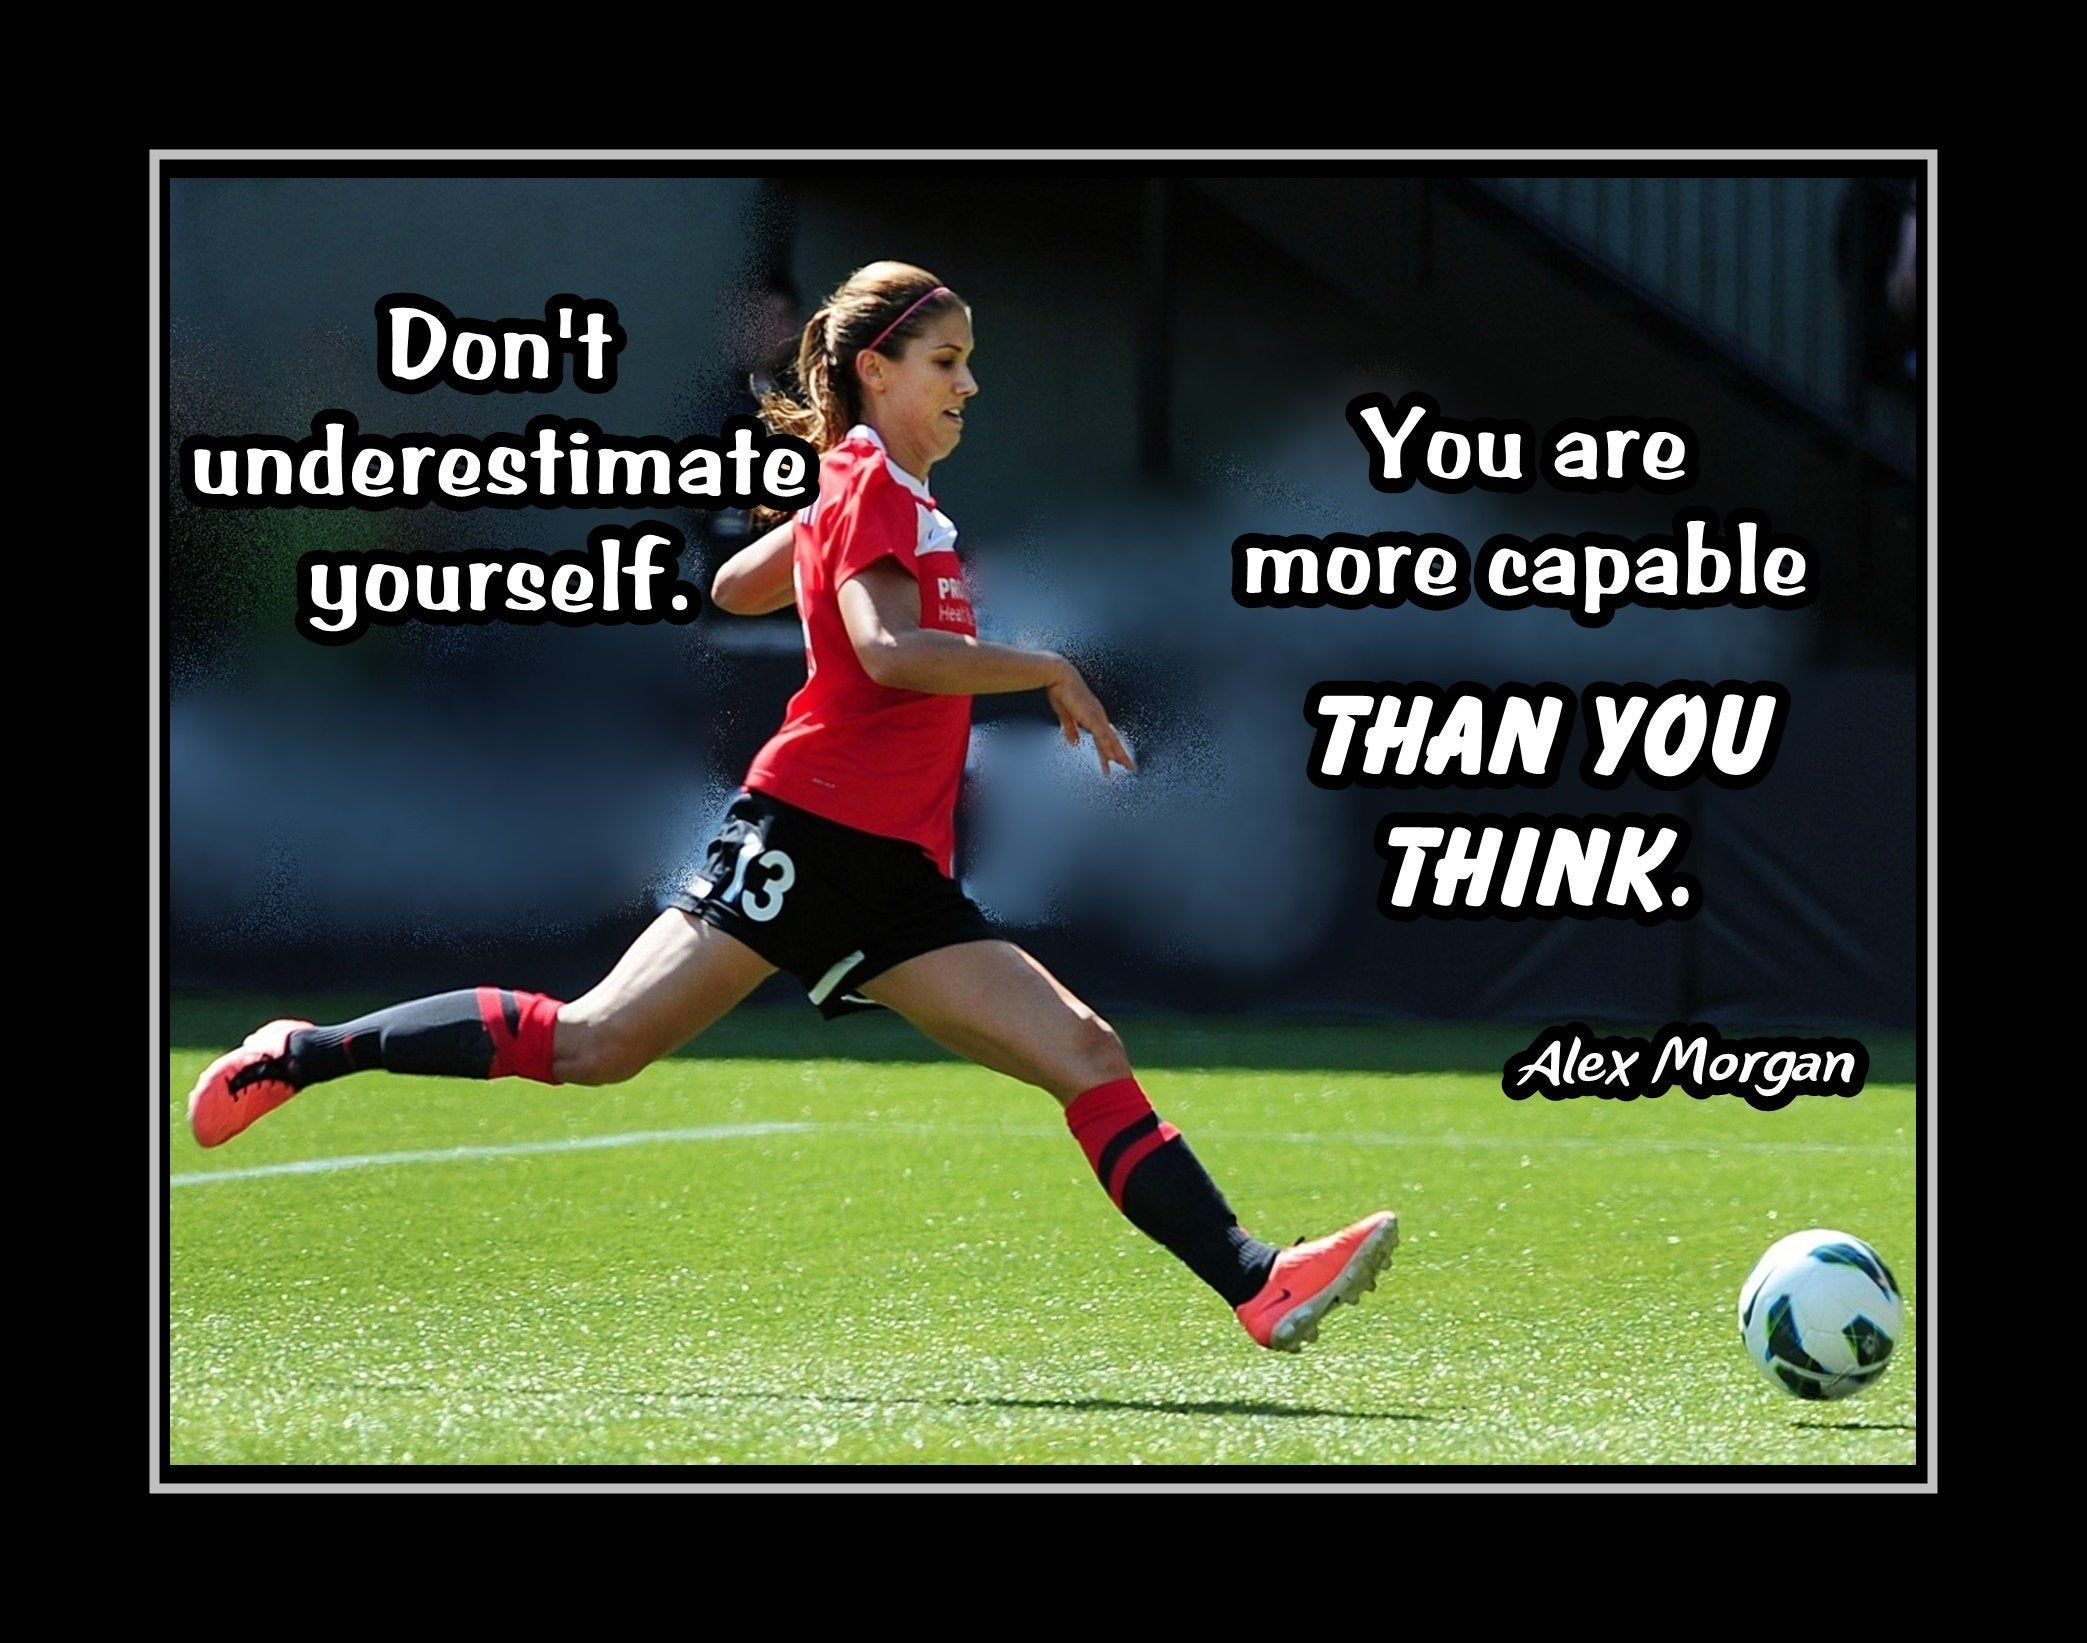 25 Of The Greatest Soccer Quotes Ever Inspirational Soccer Quotes Soccer Quotes Soccer Motivation